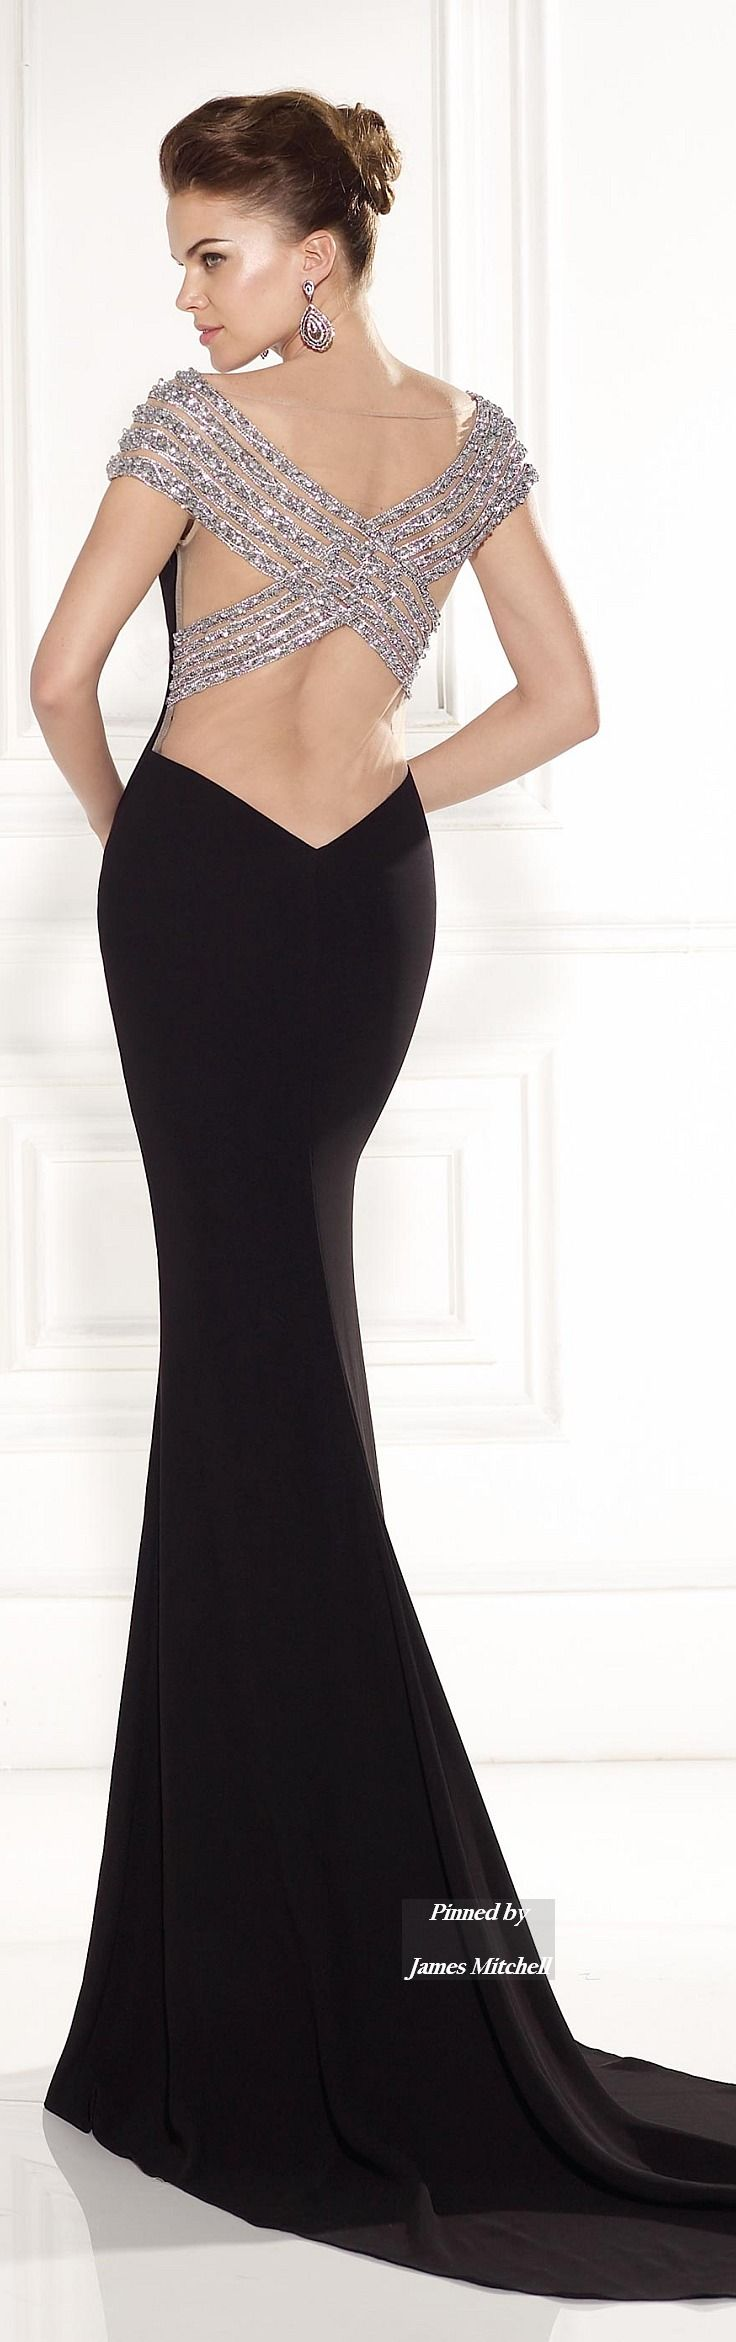 88 best Dresses images on Pinterest   Graduation, Marriage and ...